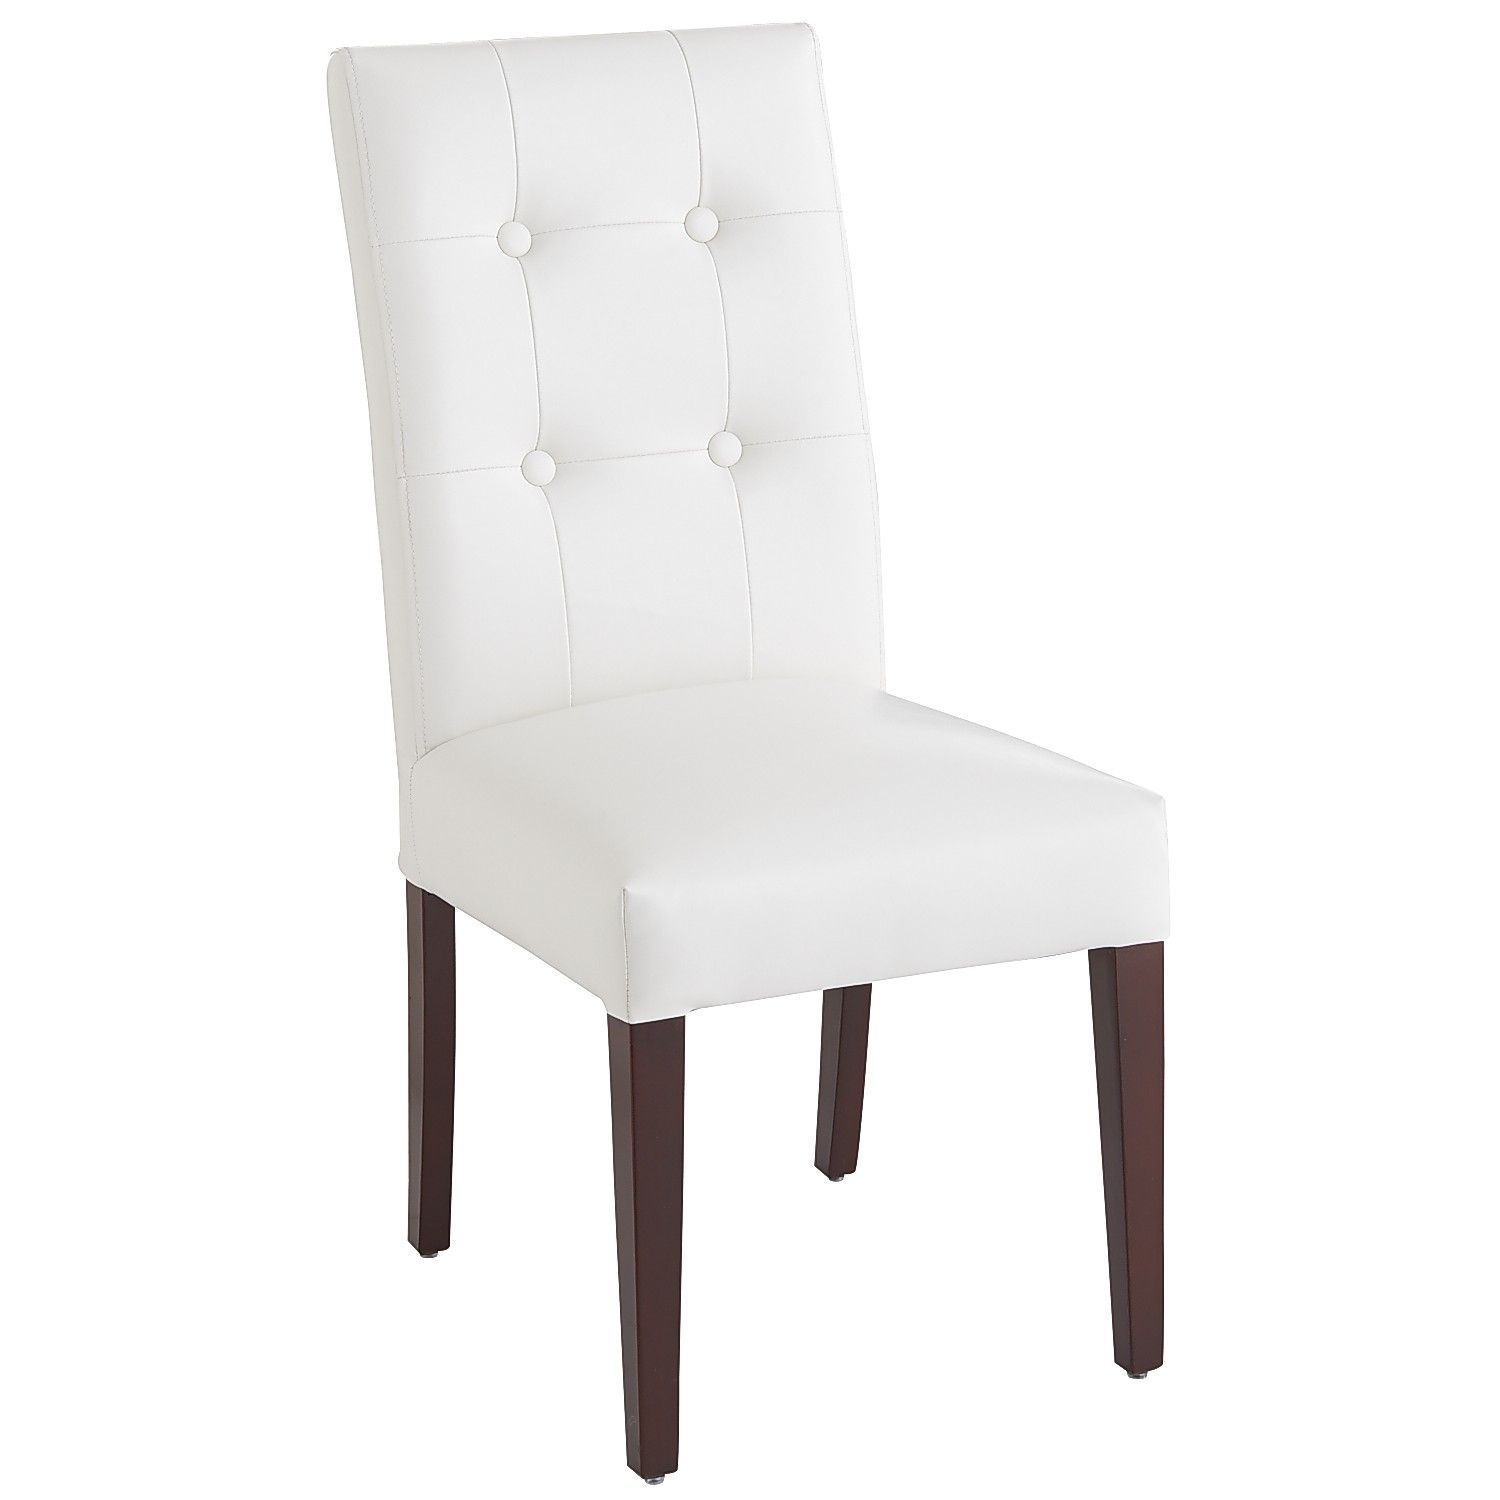 White foam dining chair